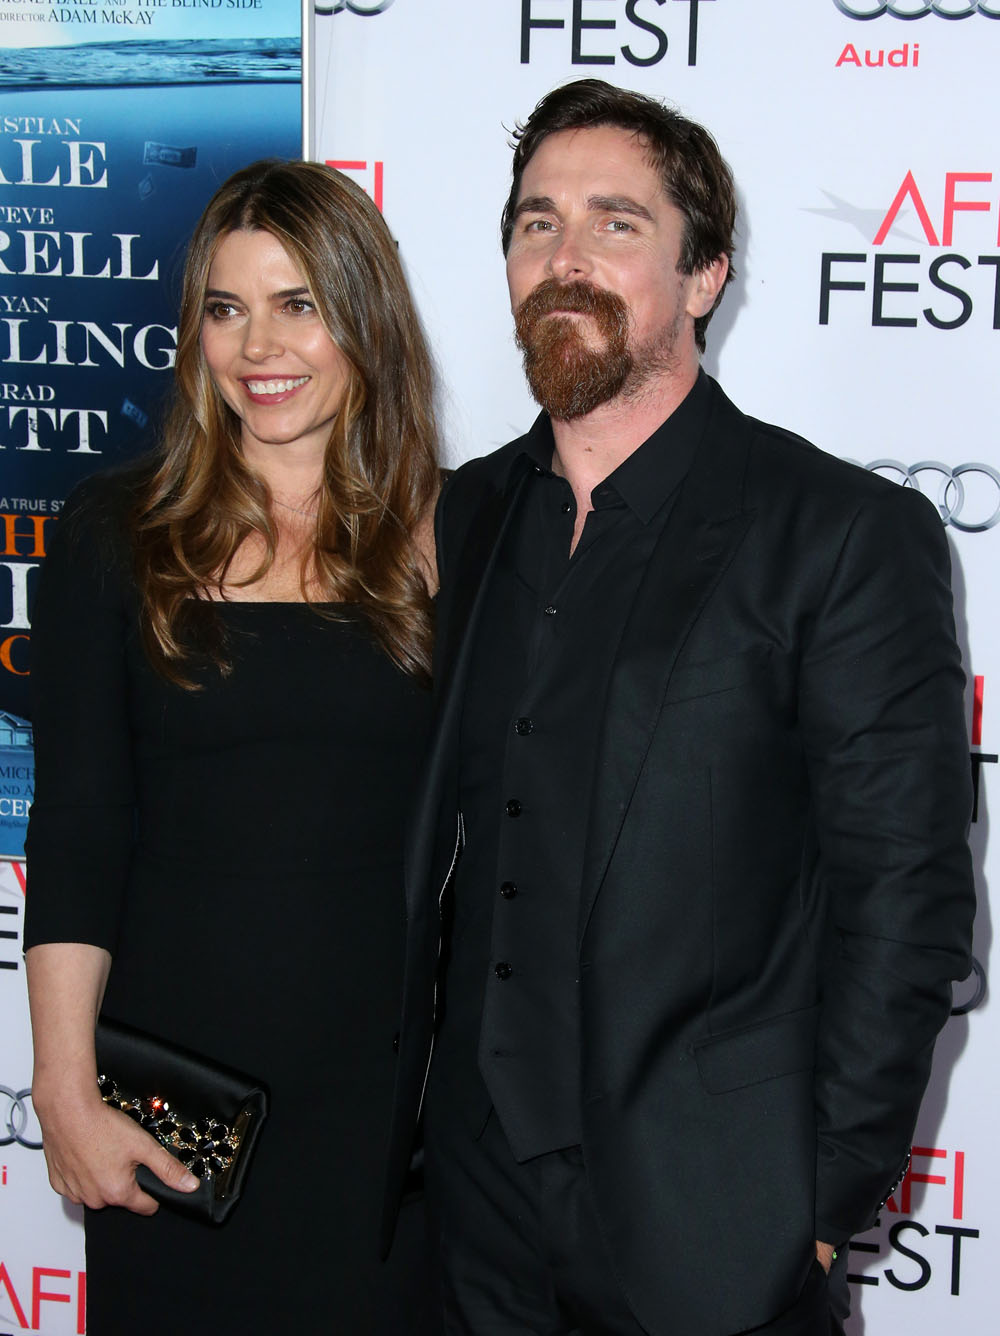 AFI FEST 2015 Presented By Audi Closing Night Gala Premiere of Paramount Pictures' 'The Big Short' - Arrivals